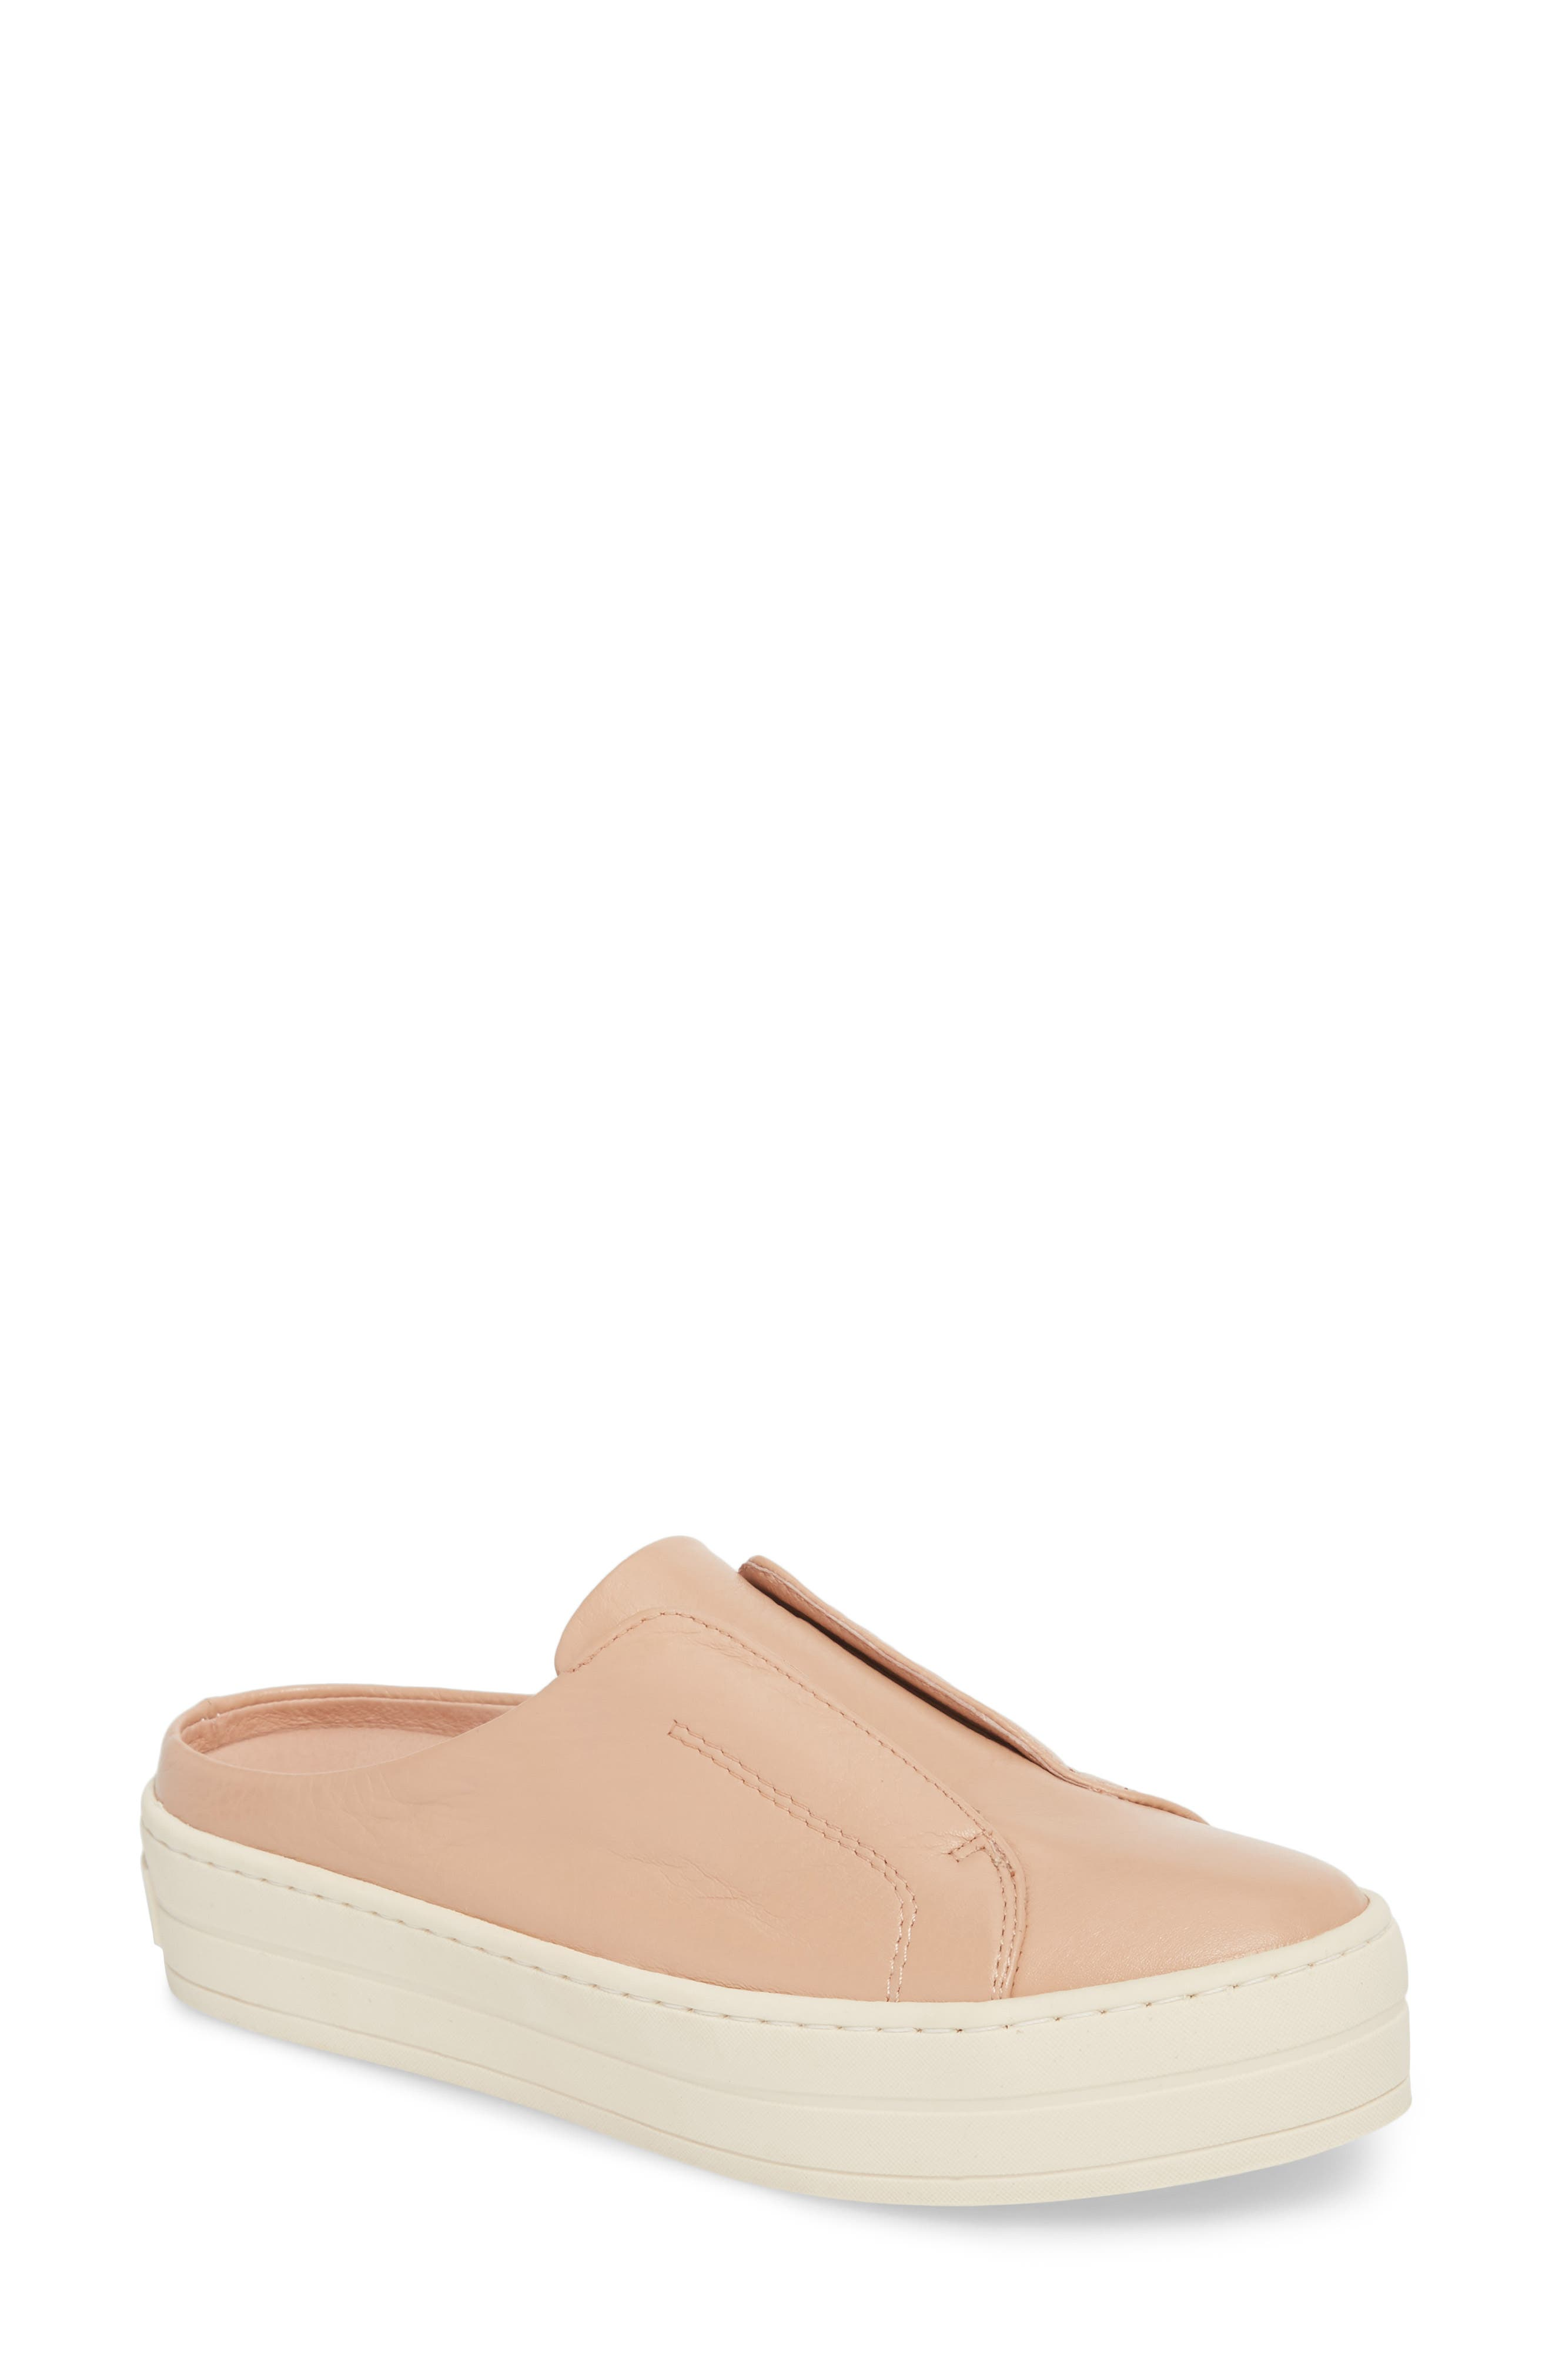 Hara Sneaker Mule,                         Main,                         color, BLUSH SUEDE